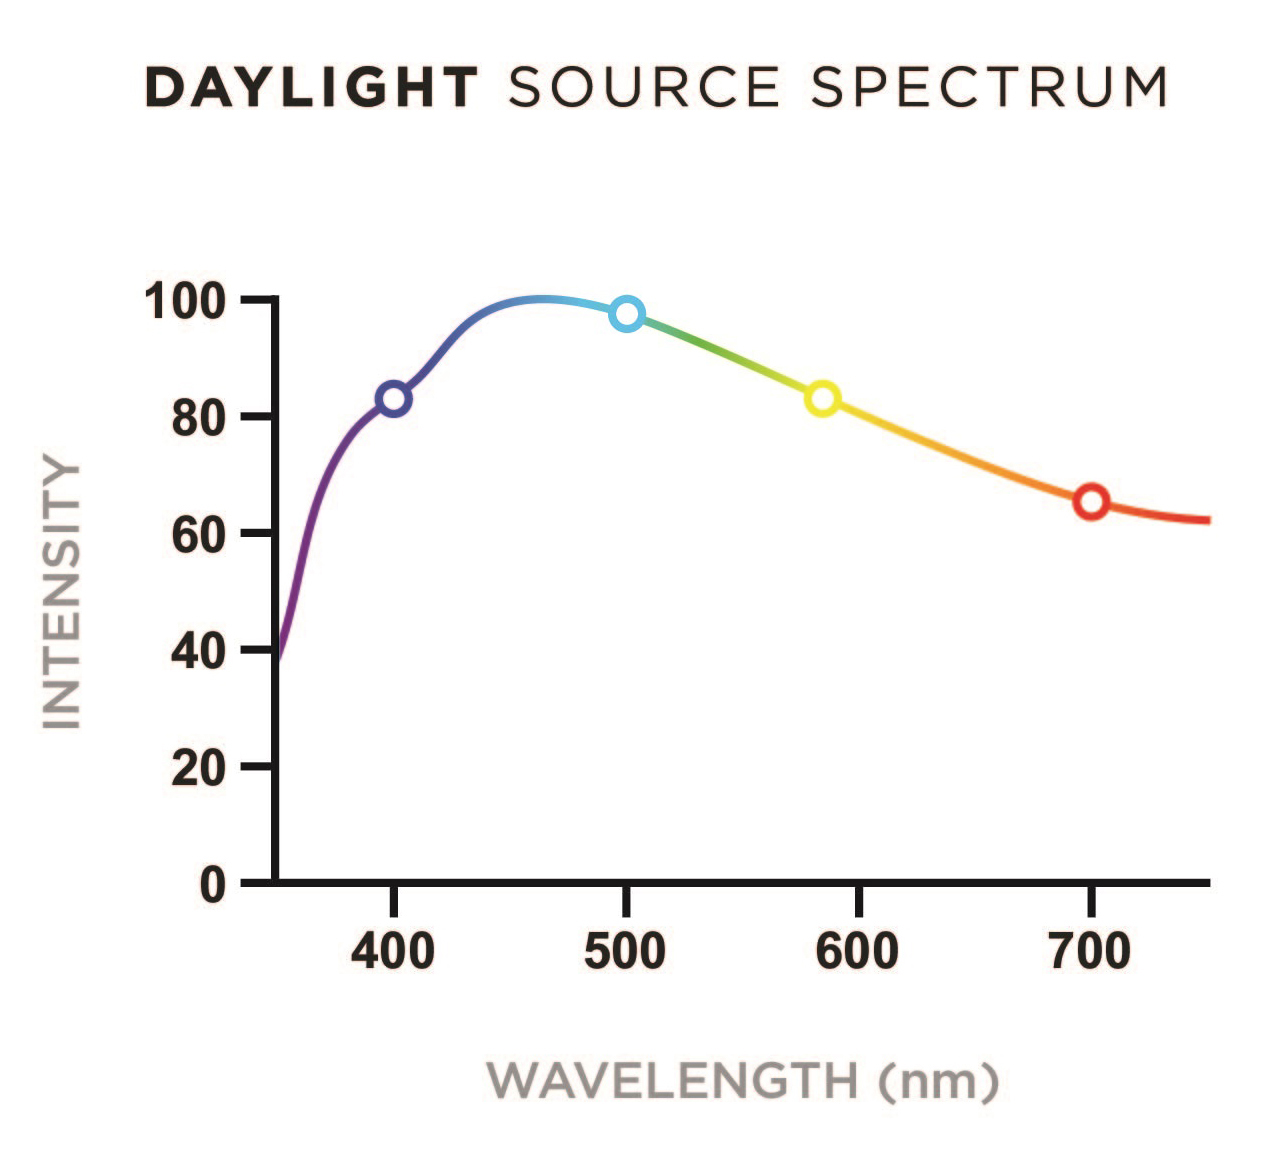 Daylight source spectra